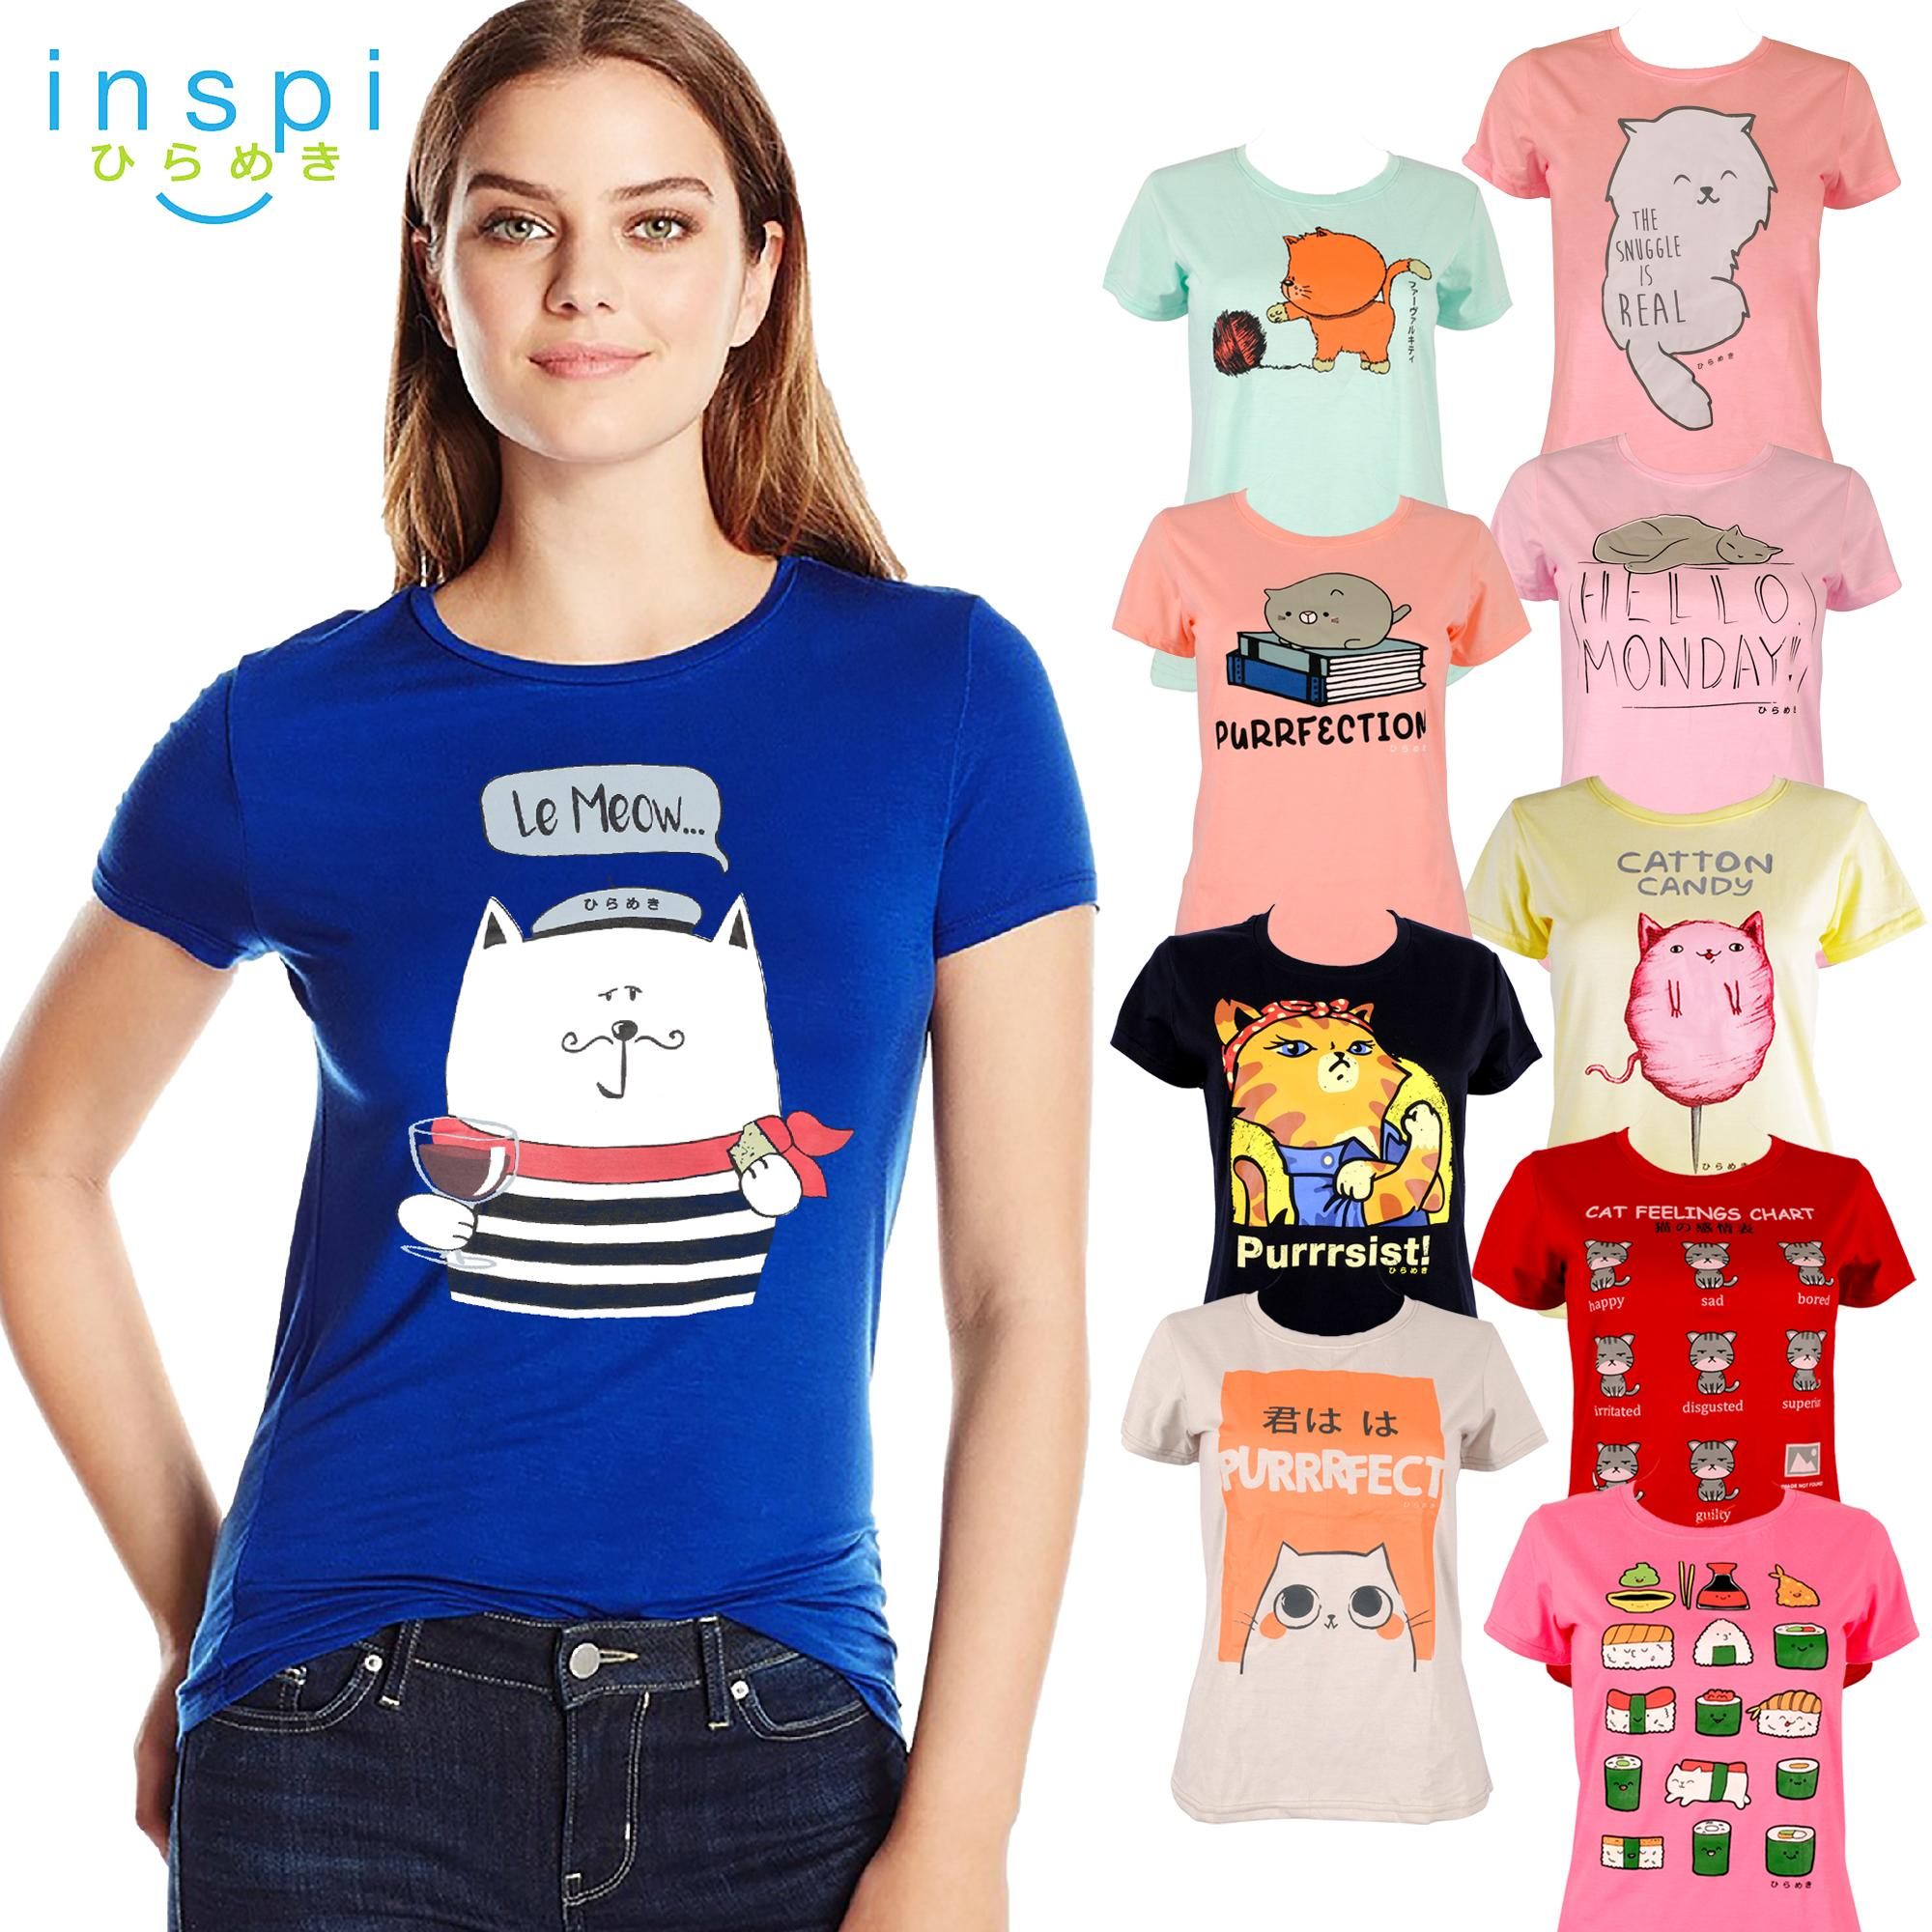 2f594bb6 INSPI Tees Ladies Neko Collection tshirt printed graphic tee Ladies t shirt  shirts women tshirts for